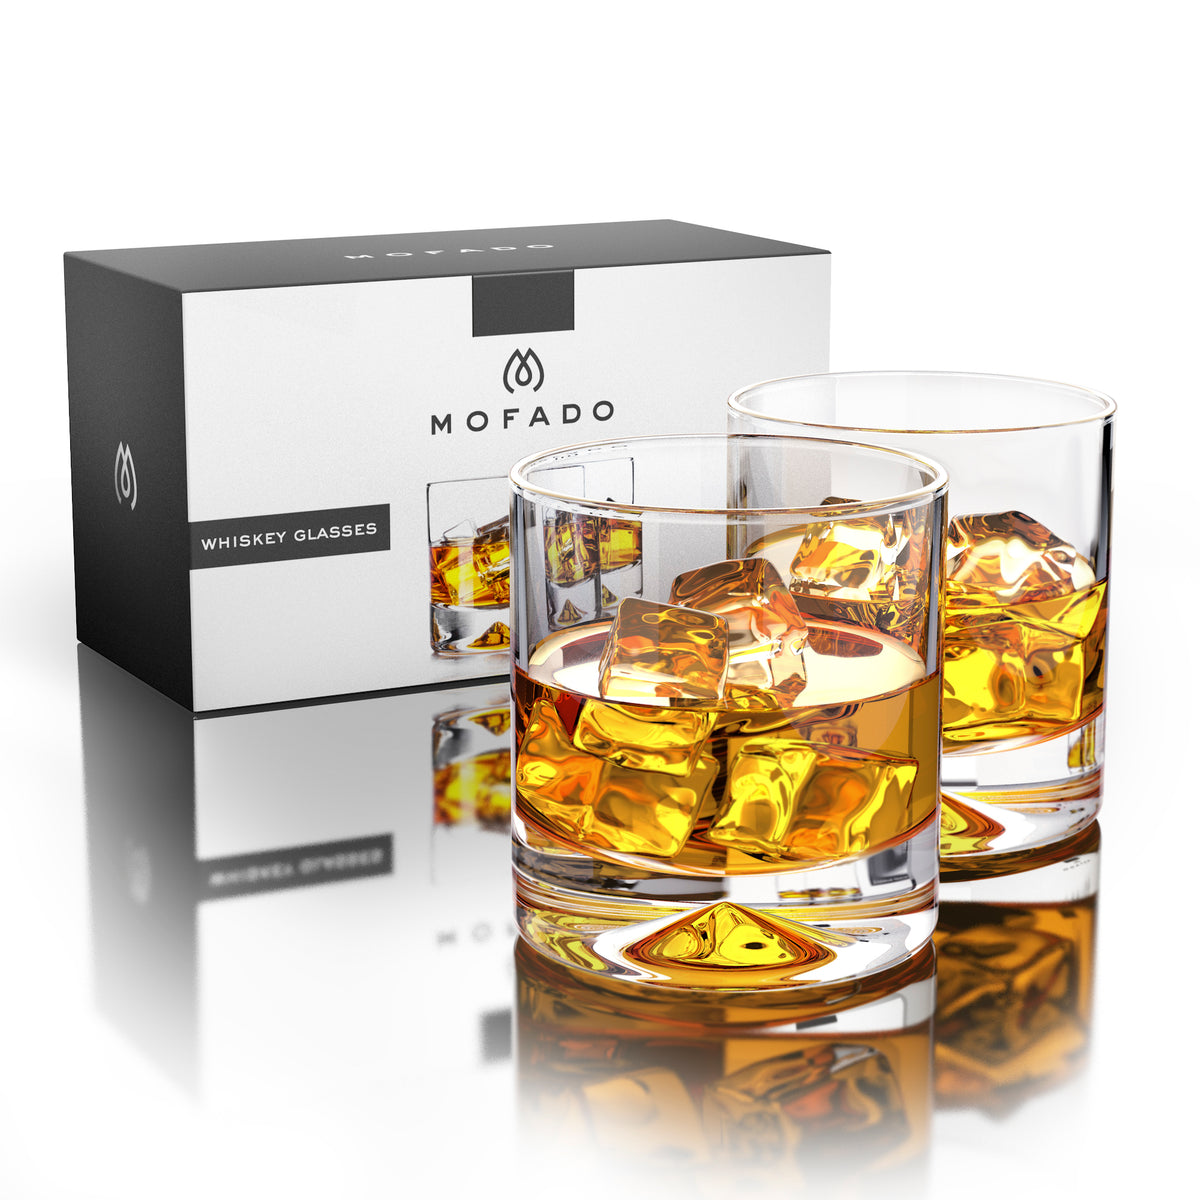 Premium Whiskey Glasses Lead Free Hand Blown Crystal Scotch Whisky Mofado